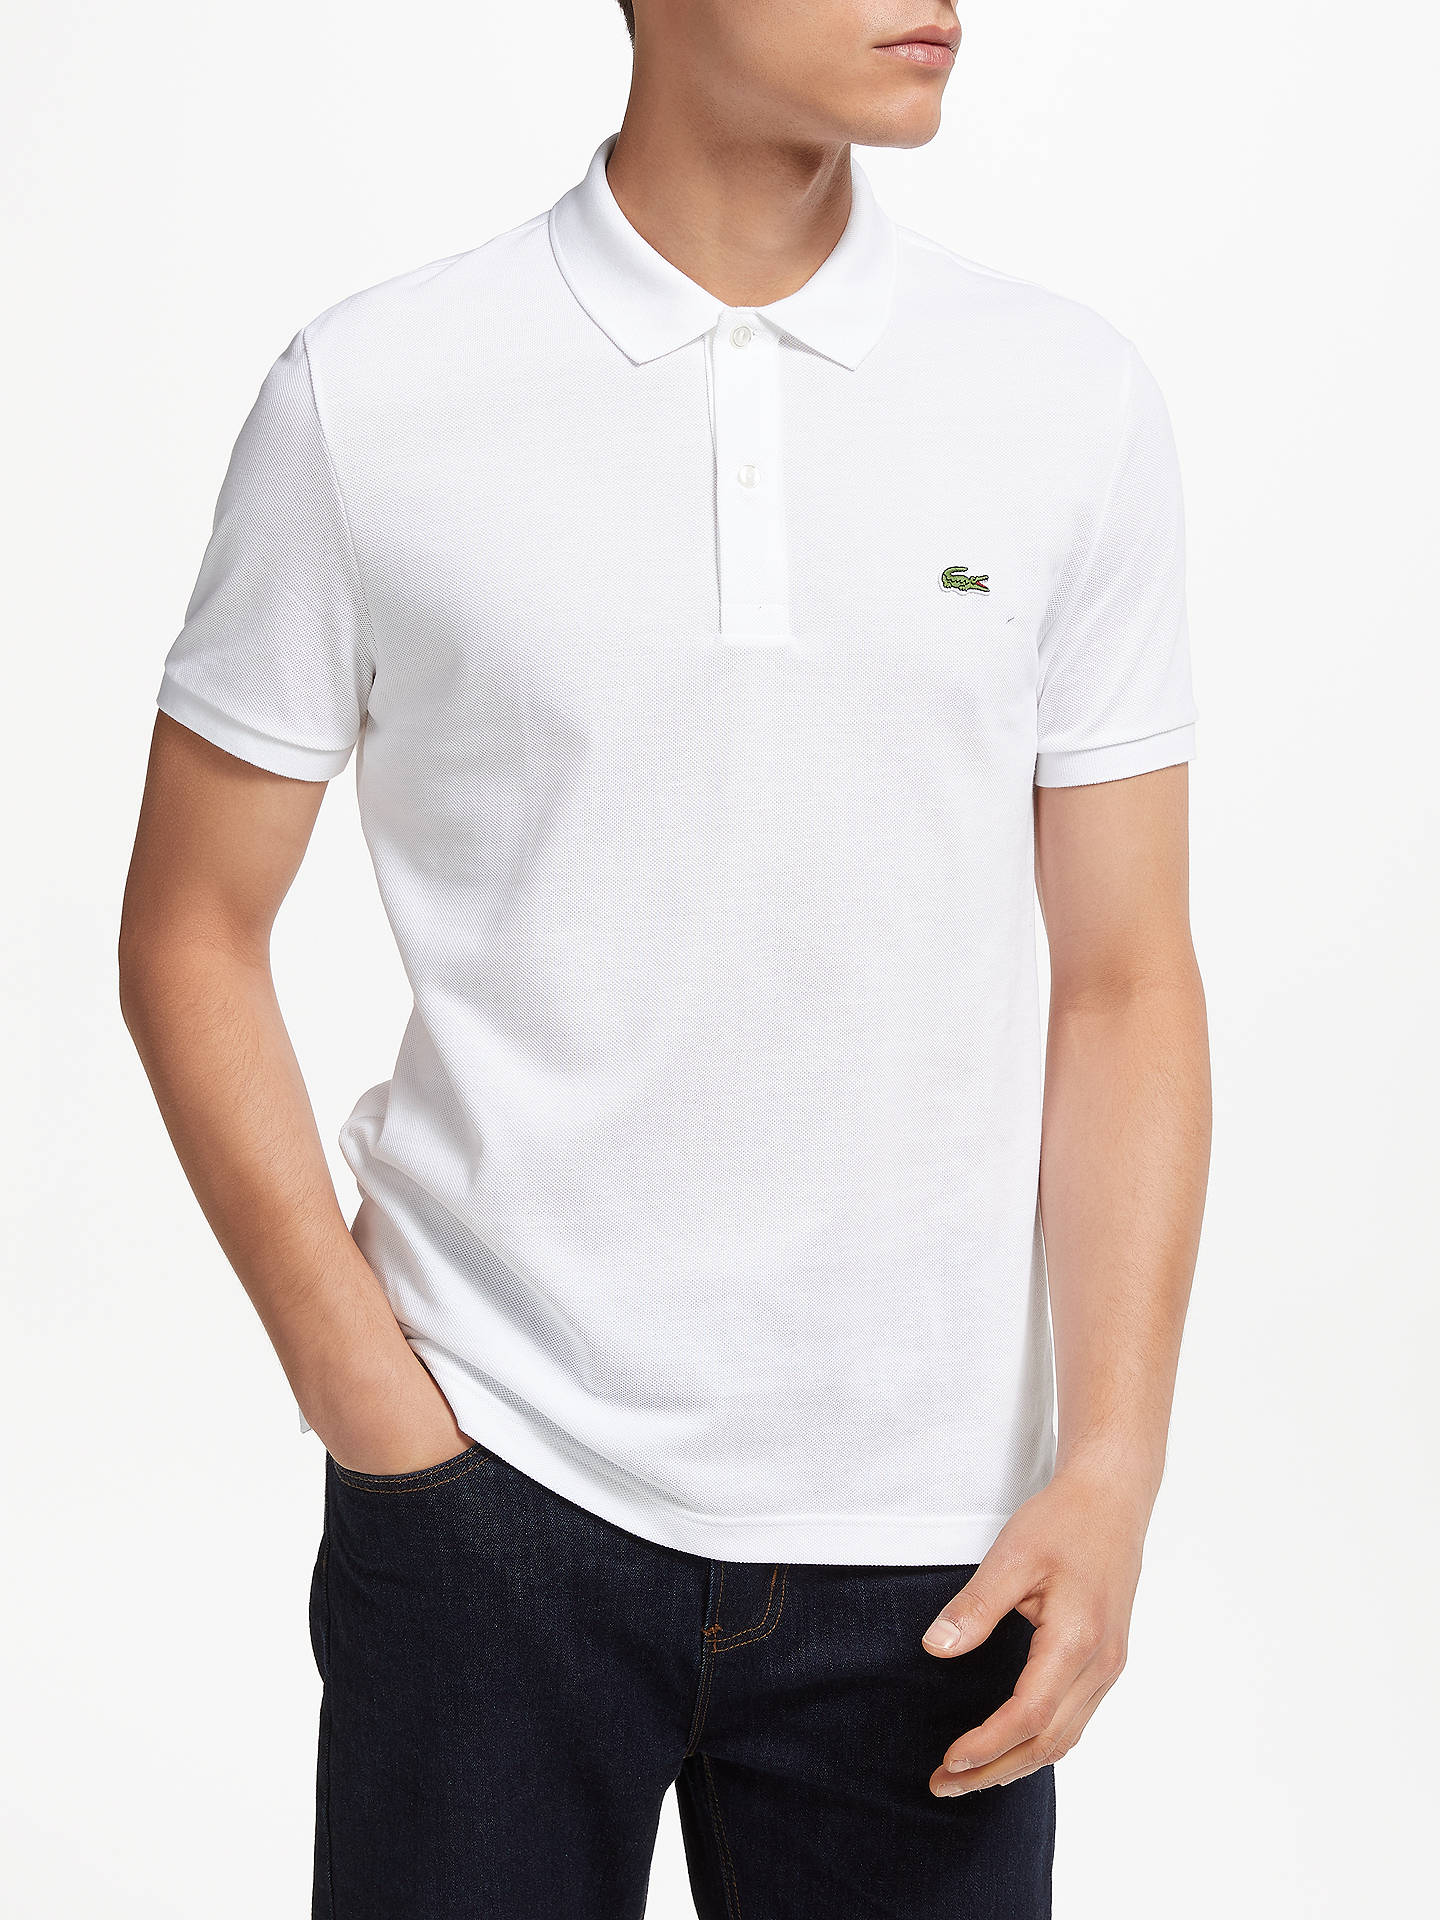 Lacoste Classic Slim Fit Short Sleeve Polo Shirt at John Lewis ... e0ba0b137